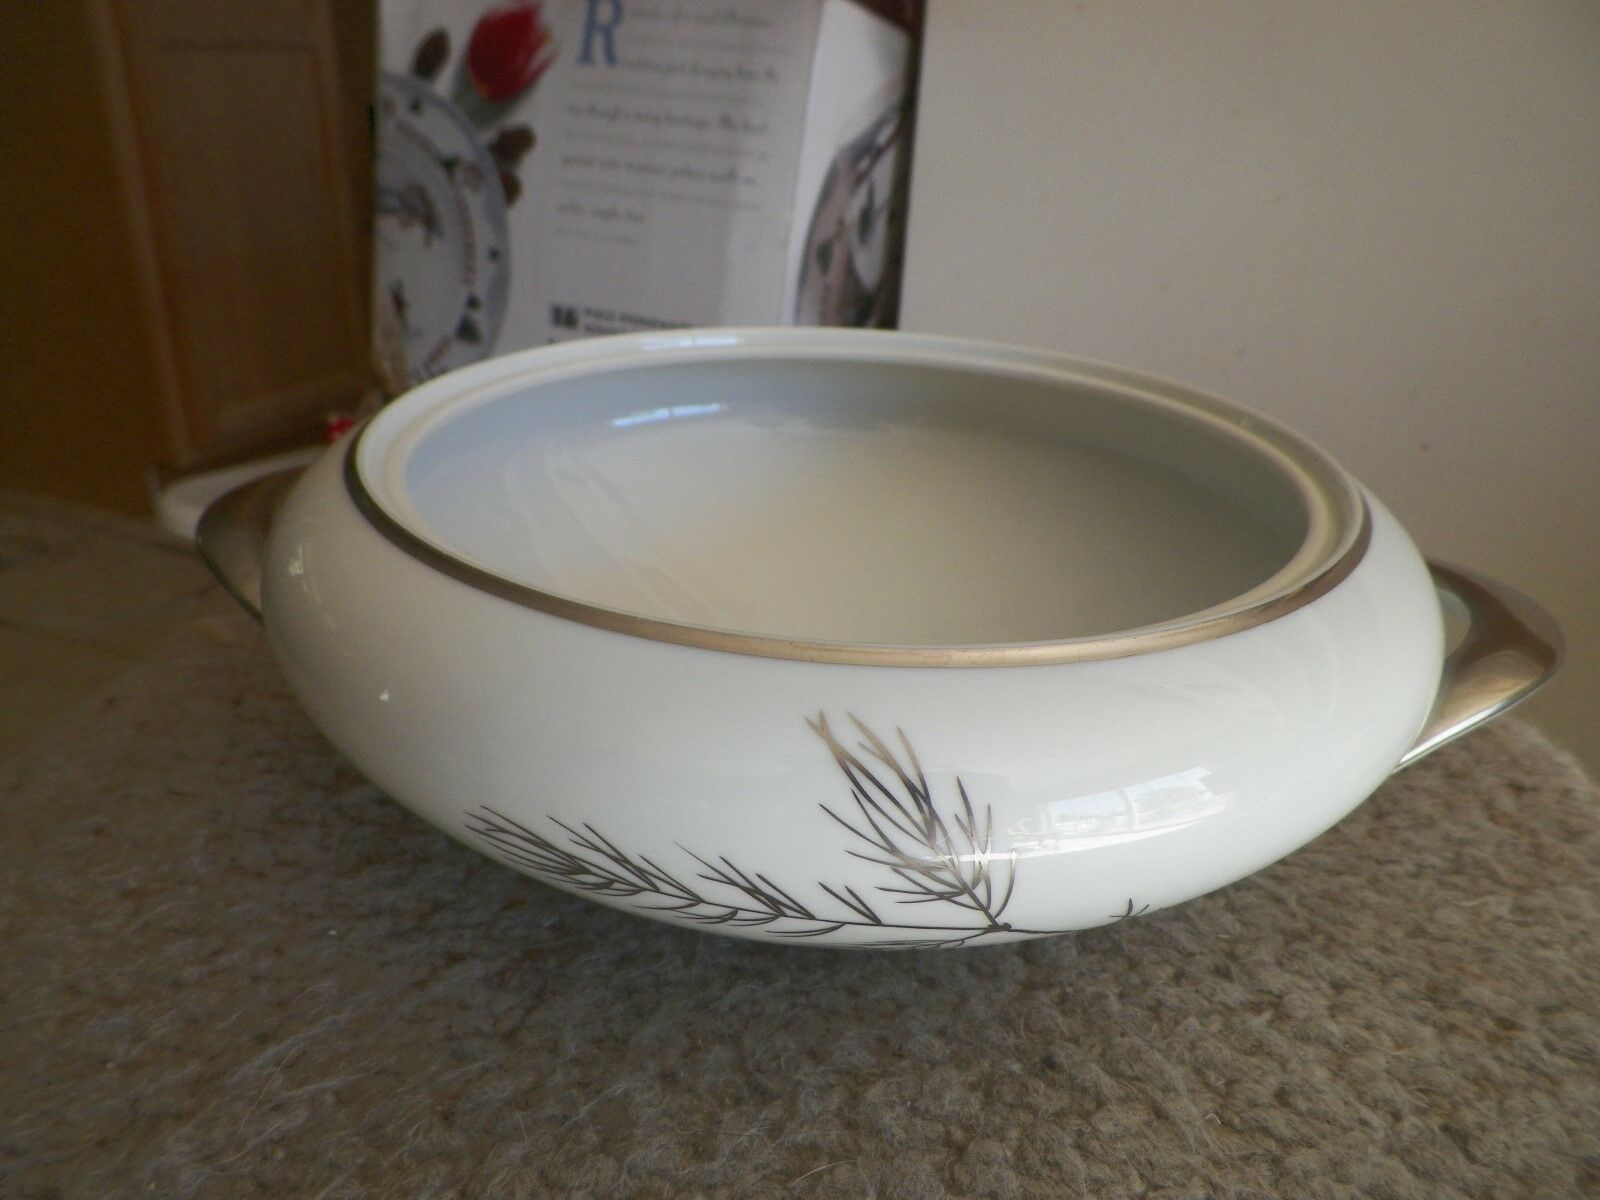 Primary image for Rosenthal 690p bowl without lid 1 available